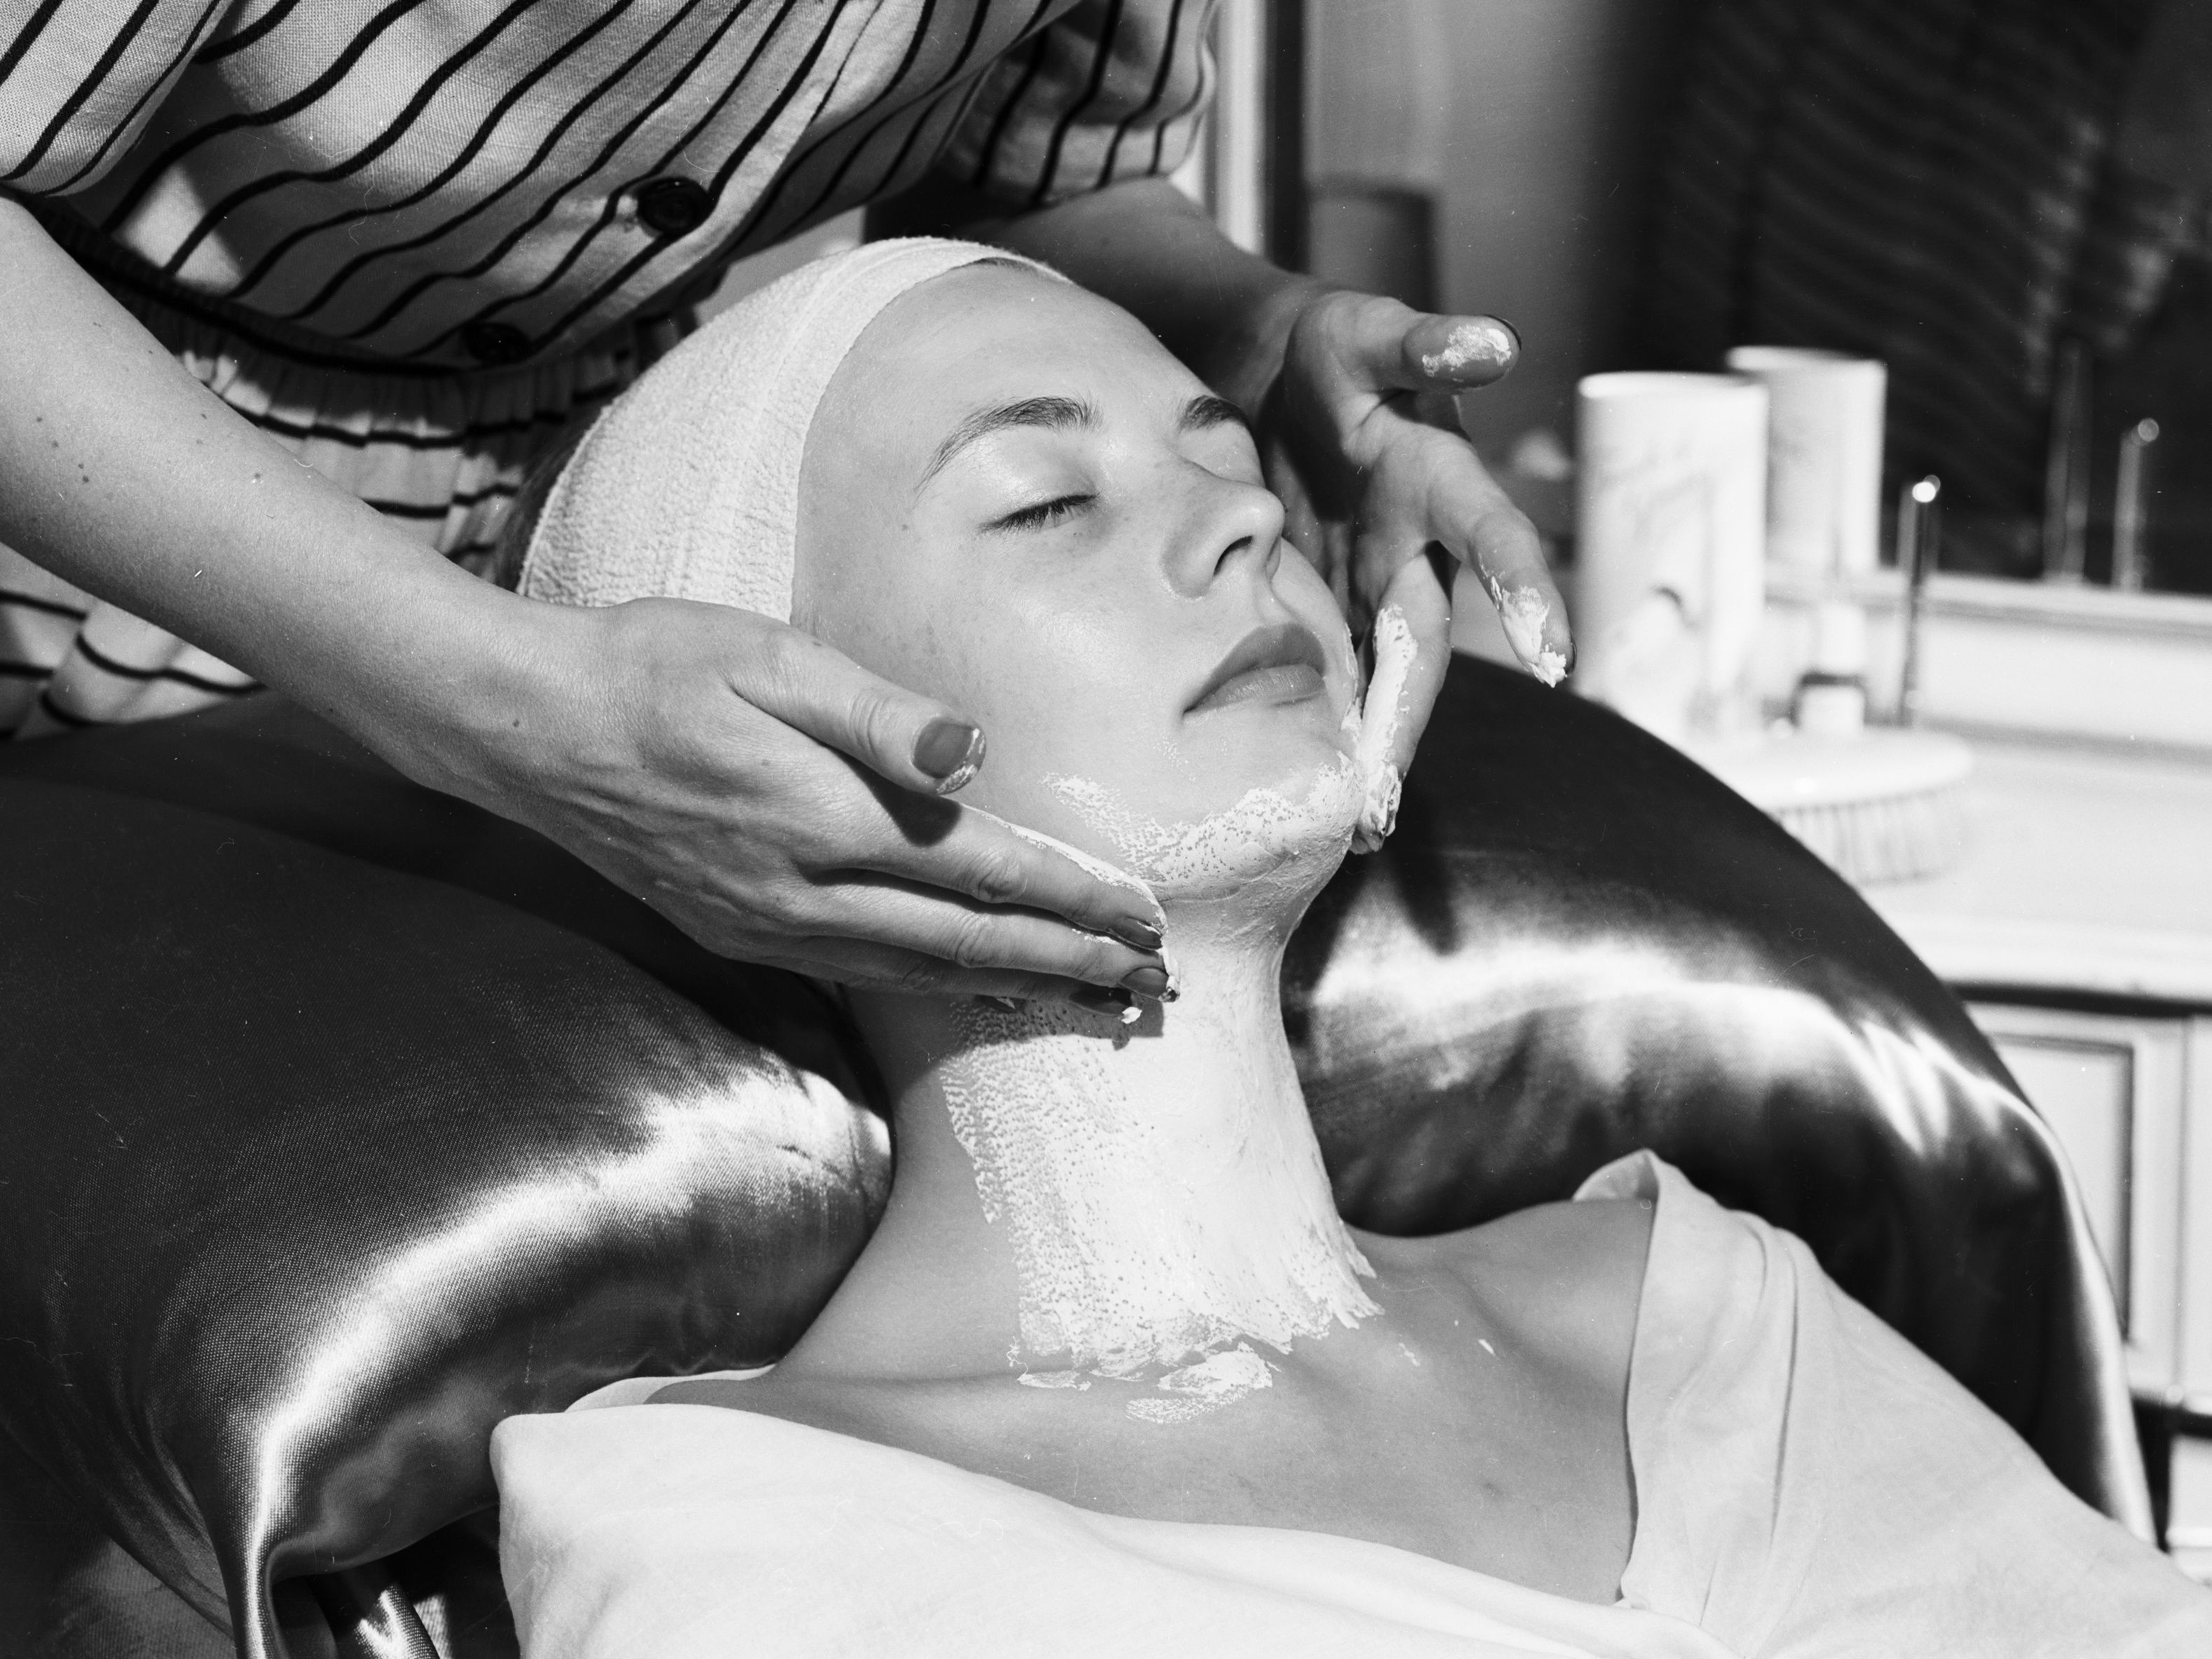 29/12/2020 A beauty specialist applies a cosmetic face pack to a woman's neck. POLITICA EUROPA ESPAÑA SOCIEDAD CHALONER WOODS